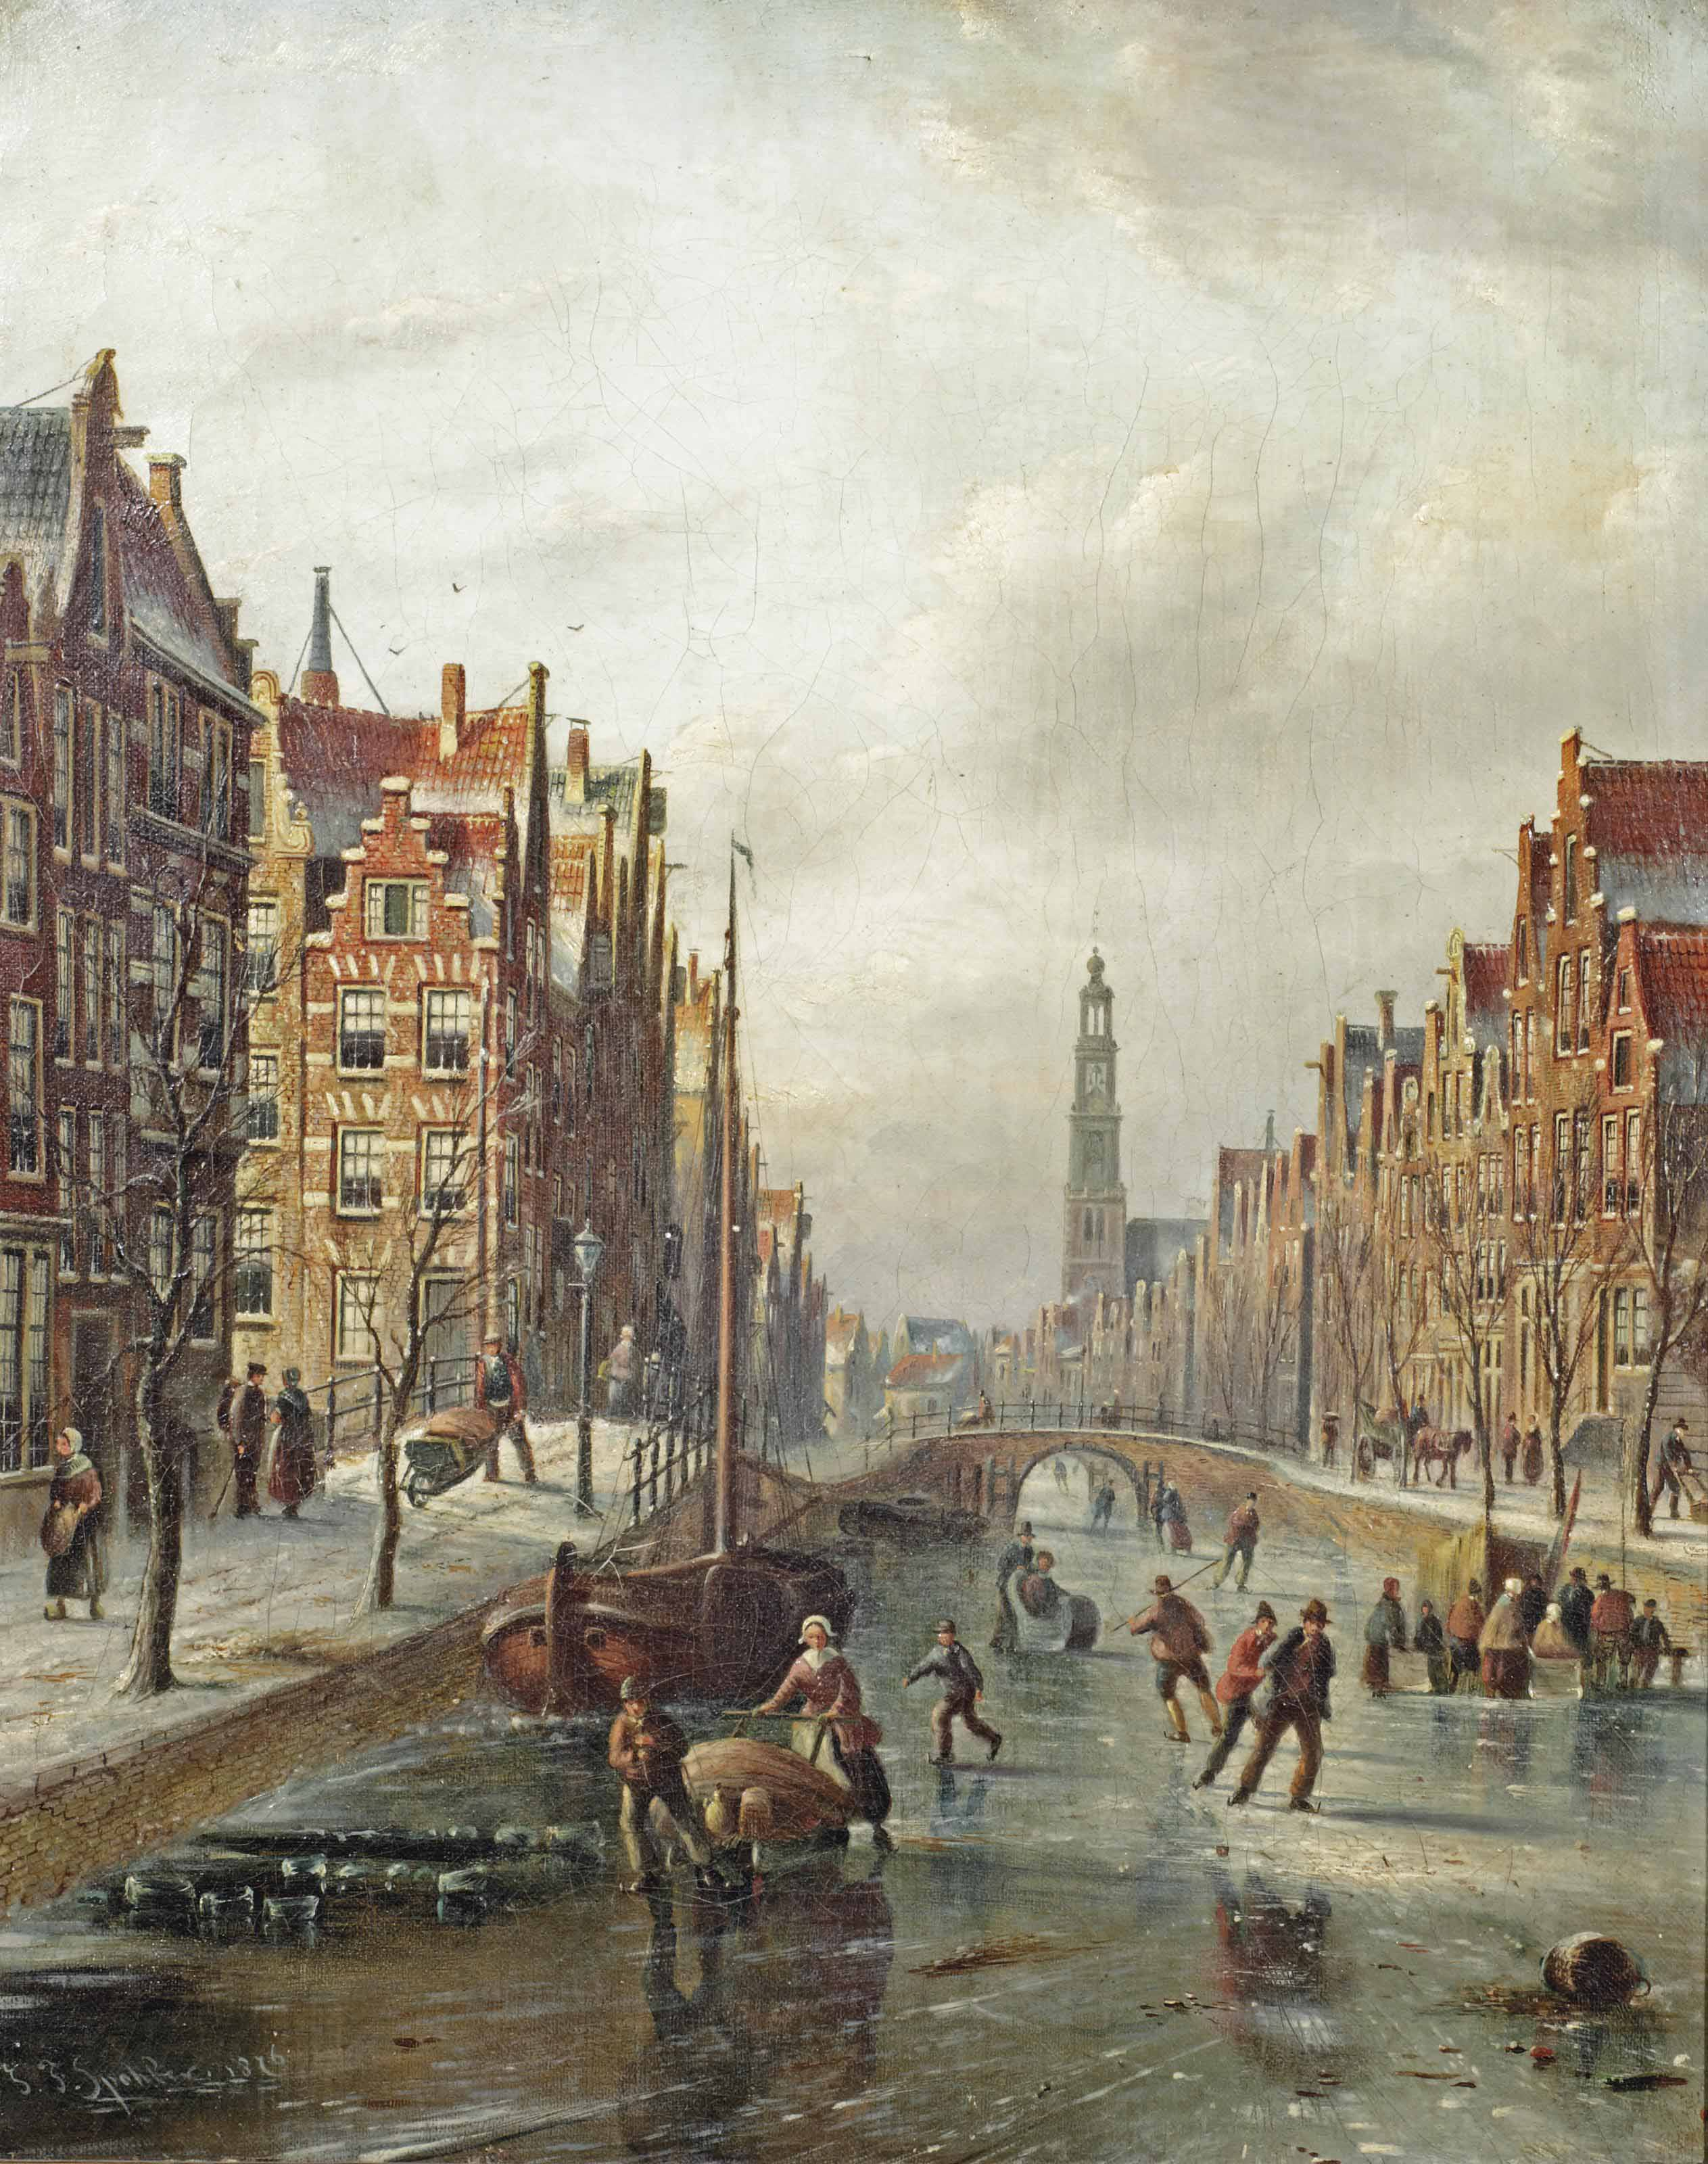 Skaters on the Prinsengracht with the Westerkerk in the distance, Amsterdam